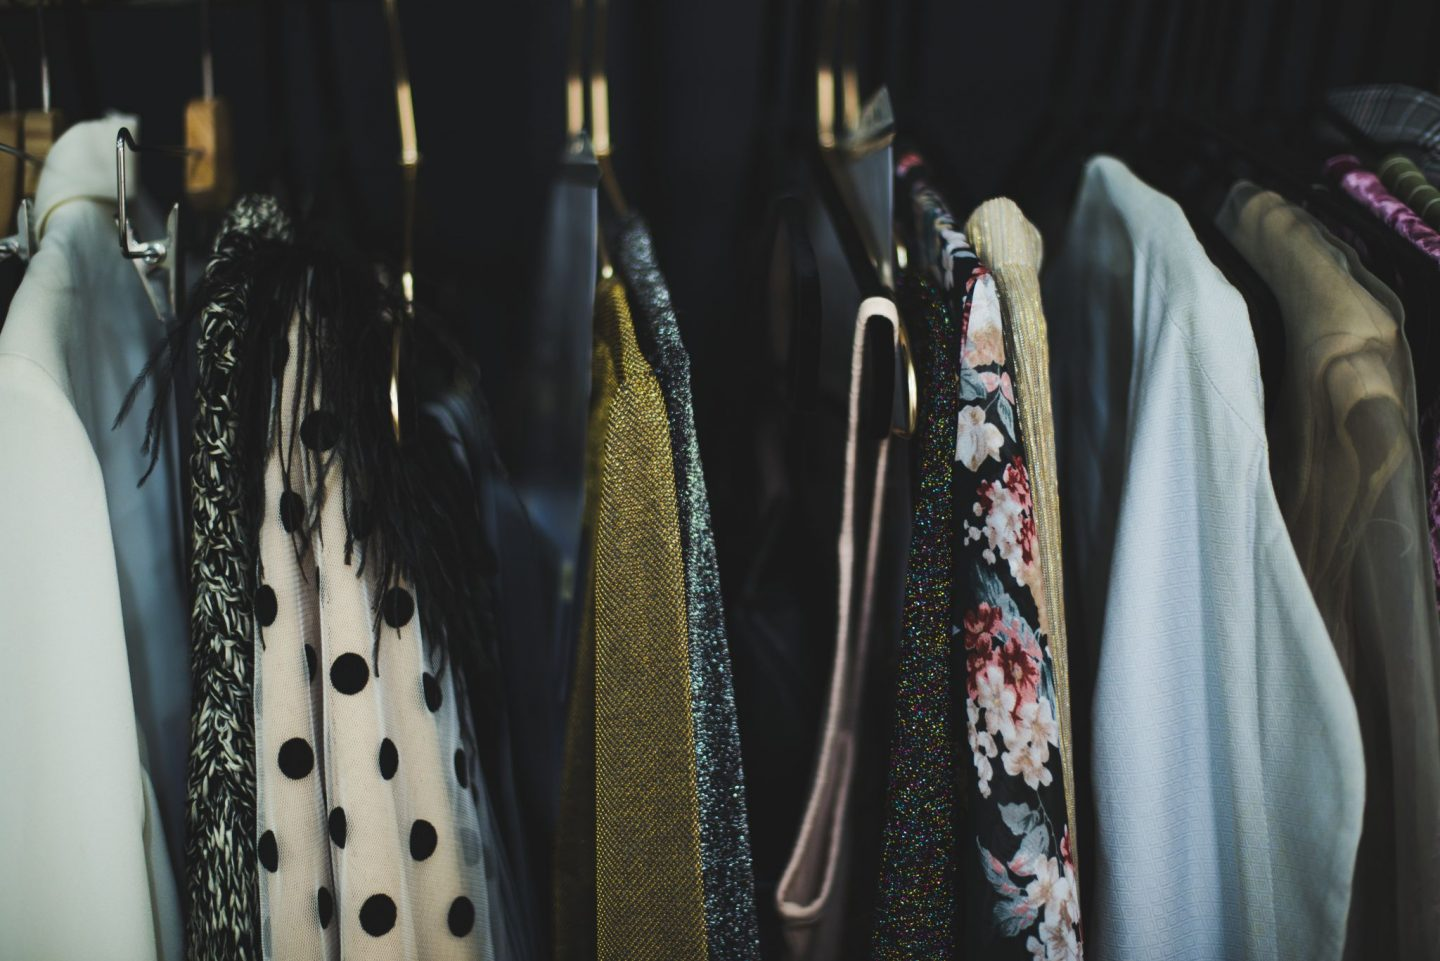 HOW TECHNOLOGY IS SHAPING THE FUTURE OF THE FASHION INDUSTRY